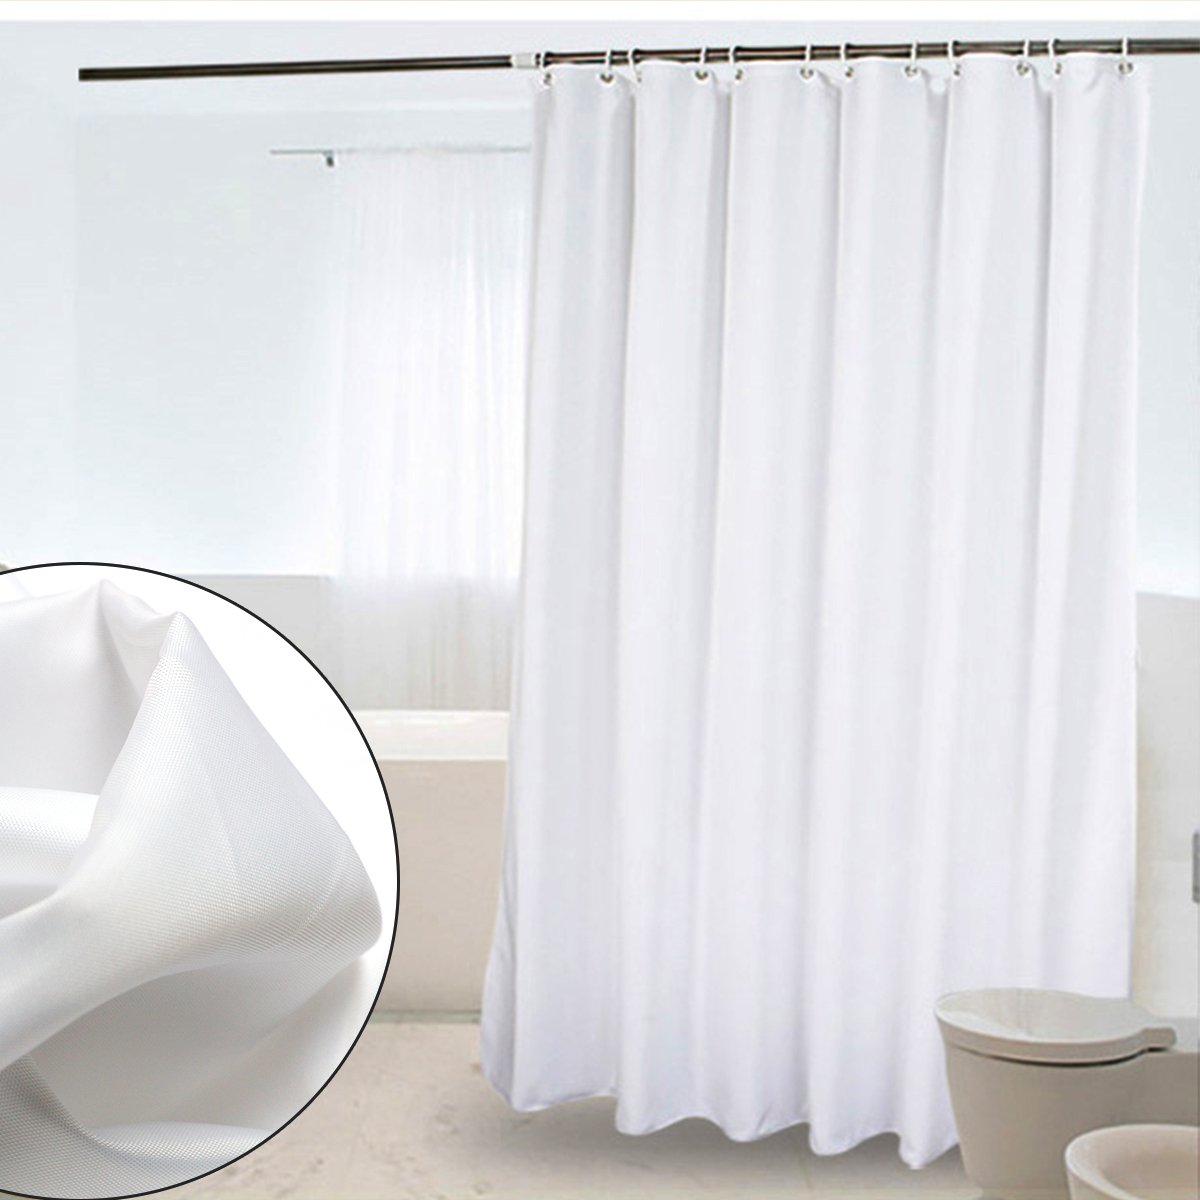 CRW Shower Curtain Liner Mildew Resistant Waterproof Polyester Bathroom Curtain Hooks, 72\